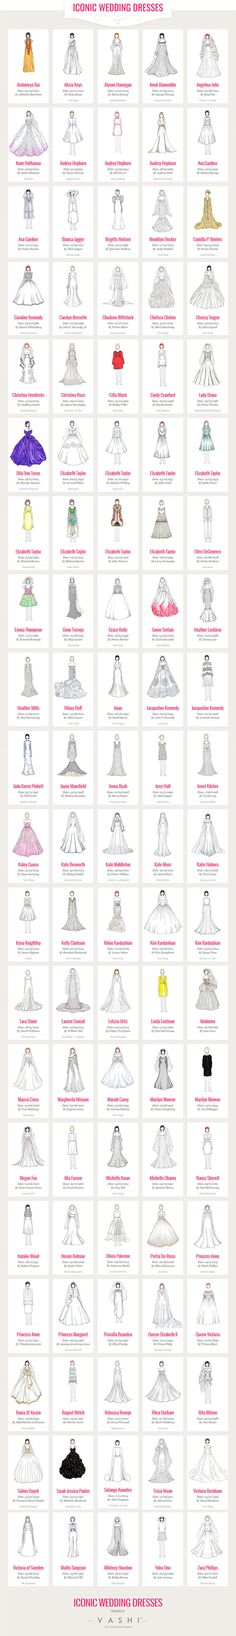 The most iconic wedding dresses ever (there are quite a few inaccuracies unfortunately - Audrey Hepburn only married twice and her wedding dresses/husbands are mixed up. But it's otherwise brilliant.)